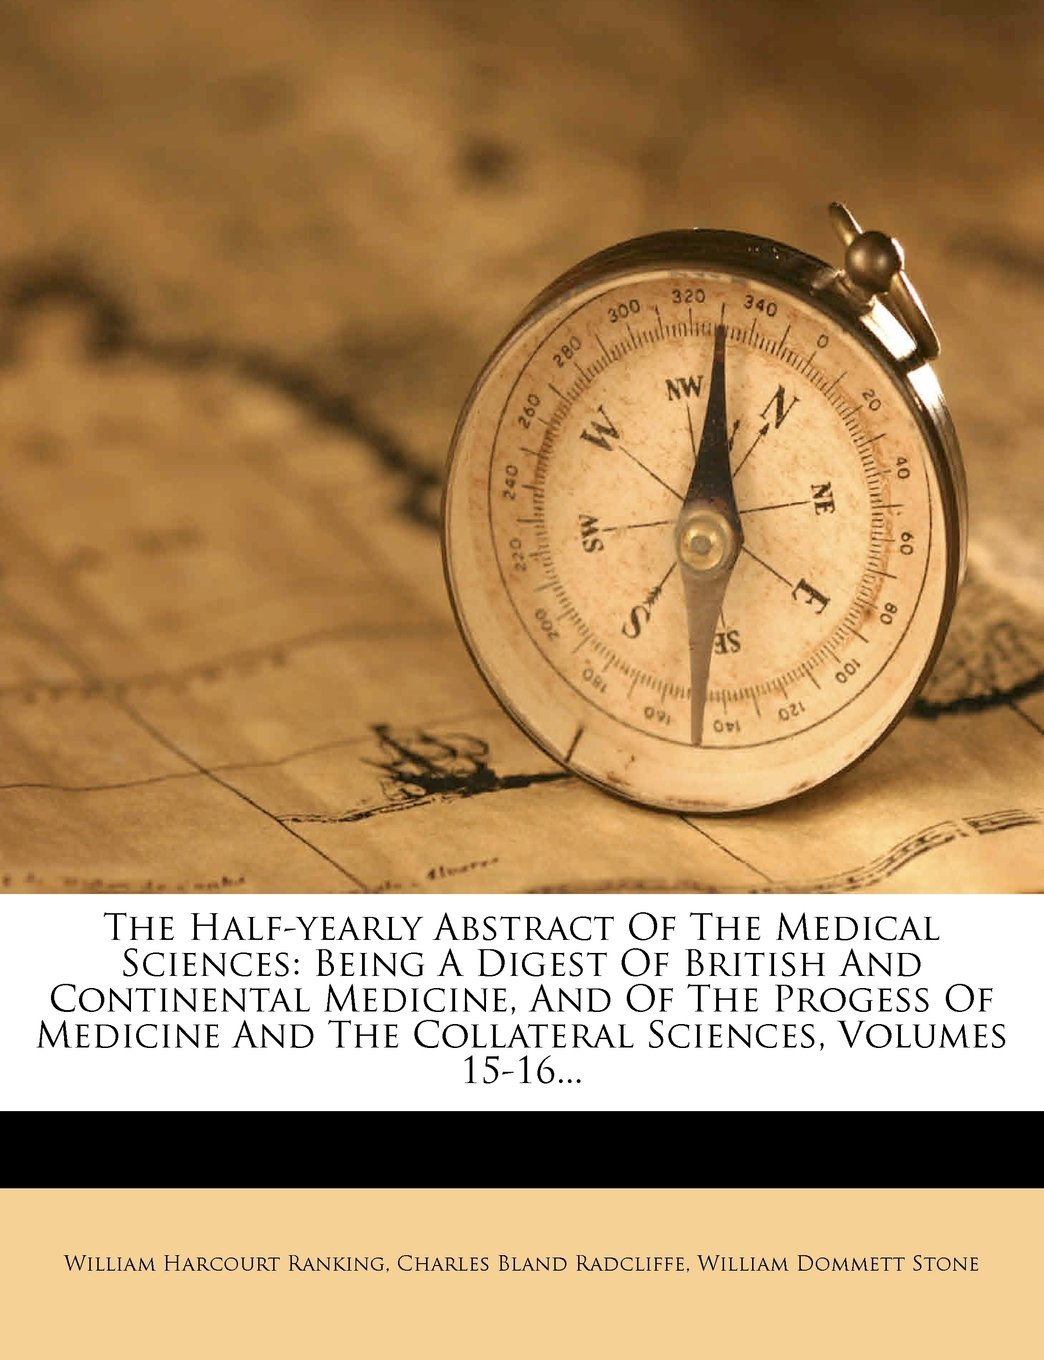 The Half-yearly Abstract Of The Medical Sciences: Being A Digest Of British And Continental Medicine, And Of The Progess Of Medicine And The Collateral Sciences, Volumes 15-16... pdf